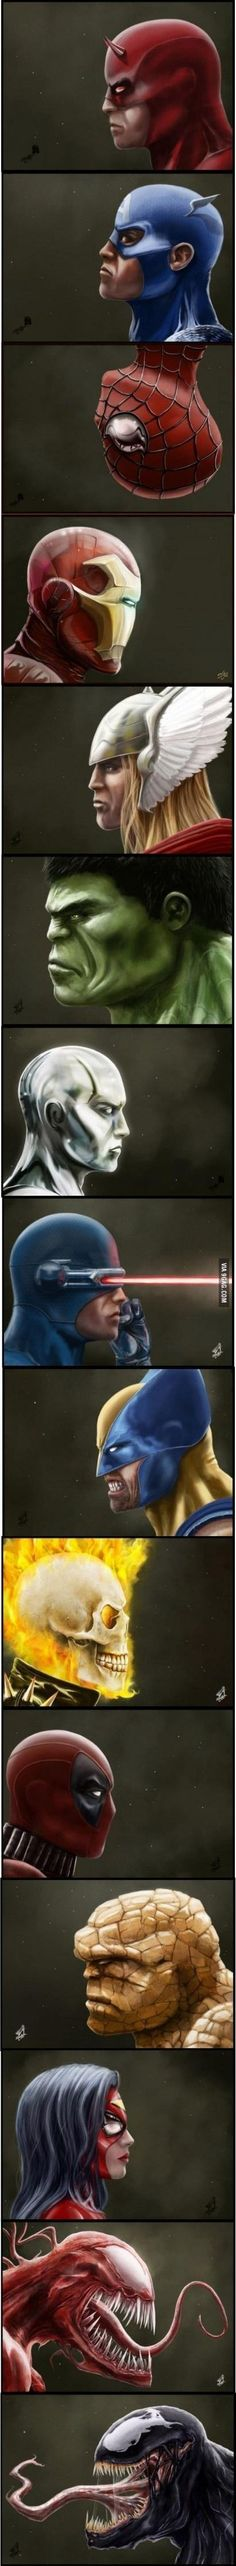 9GAG - Just some Superheroes and Villains